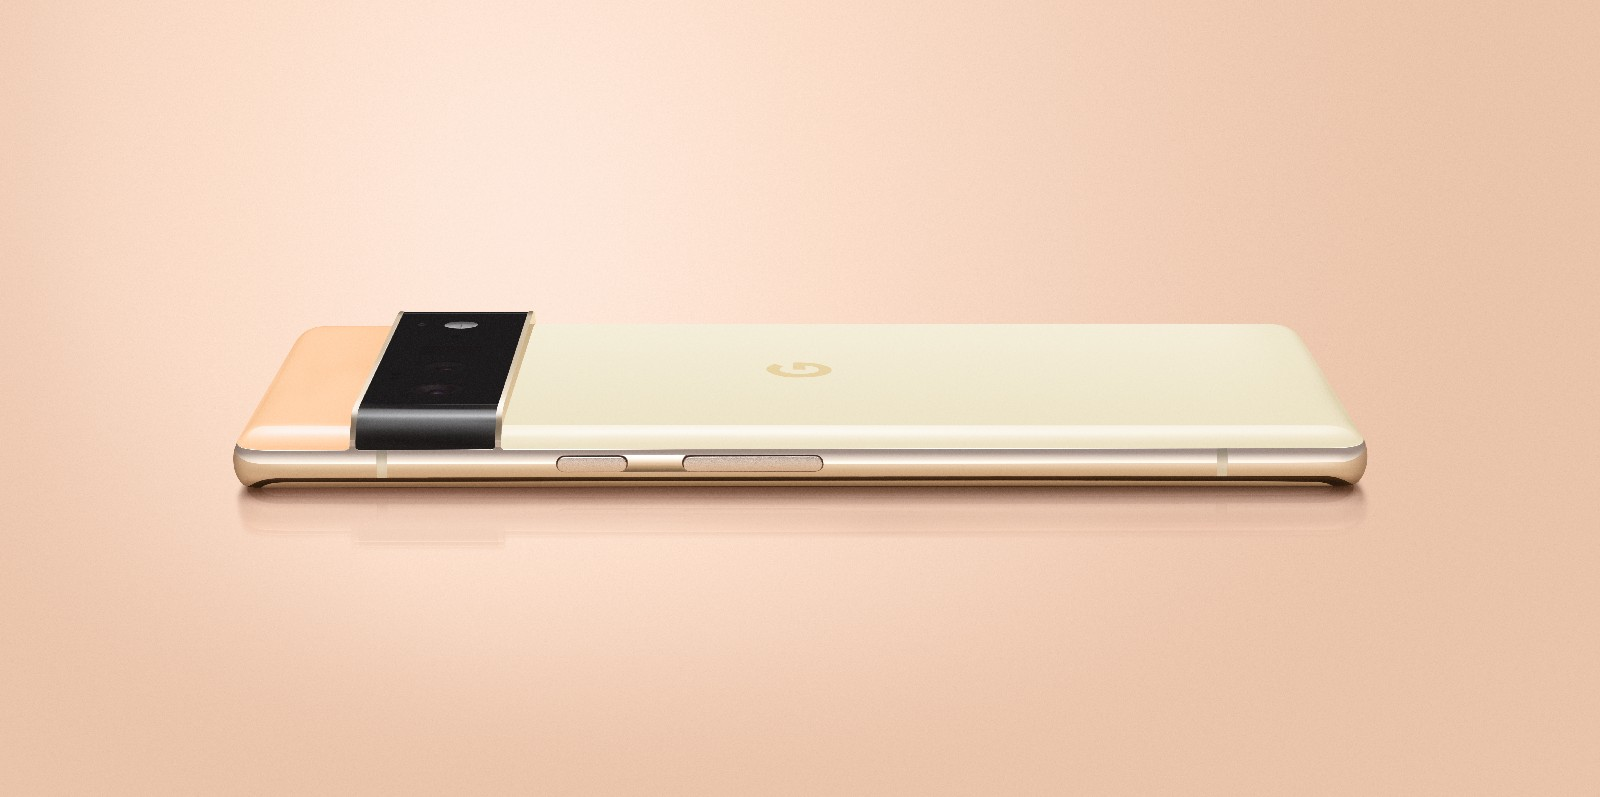 Side view of the peach/gold Pixel 6 Pro.